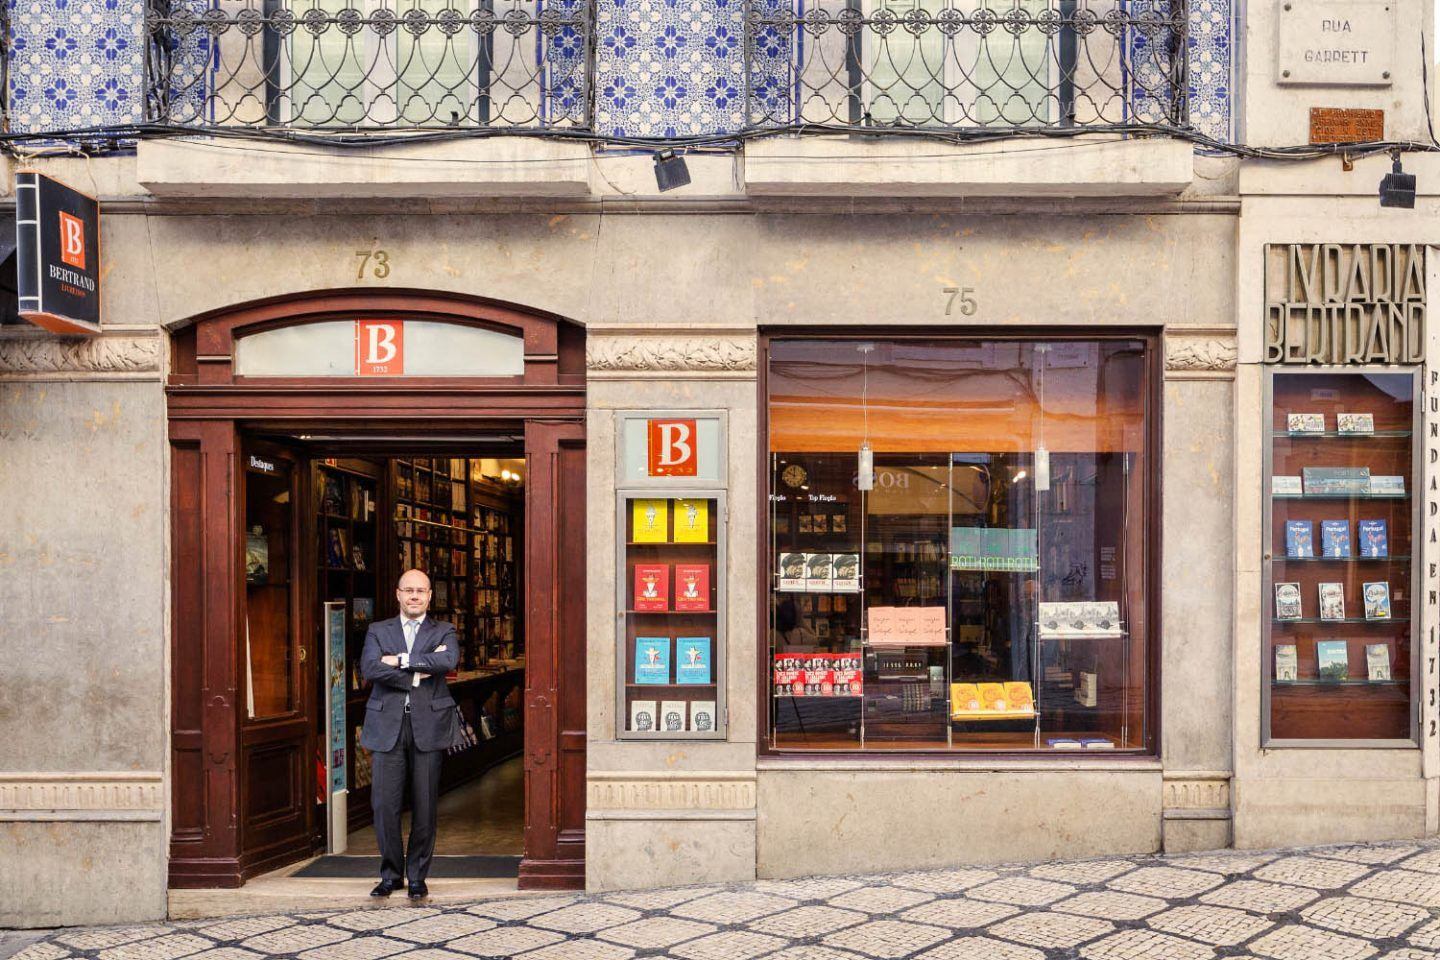 The front entrance of Bertrand Bookstore in Lisbon, Portugal